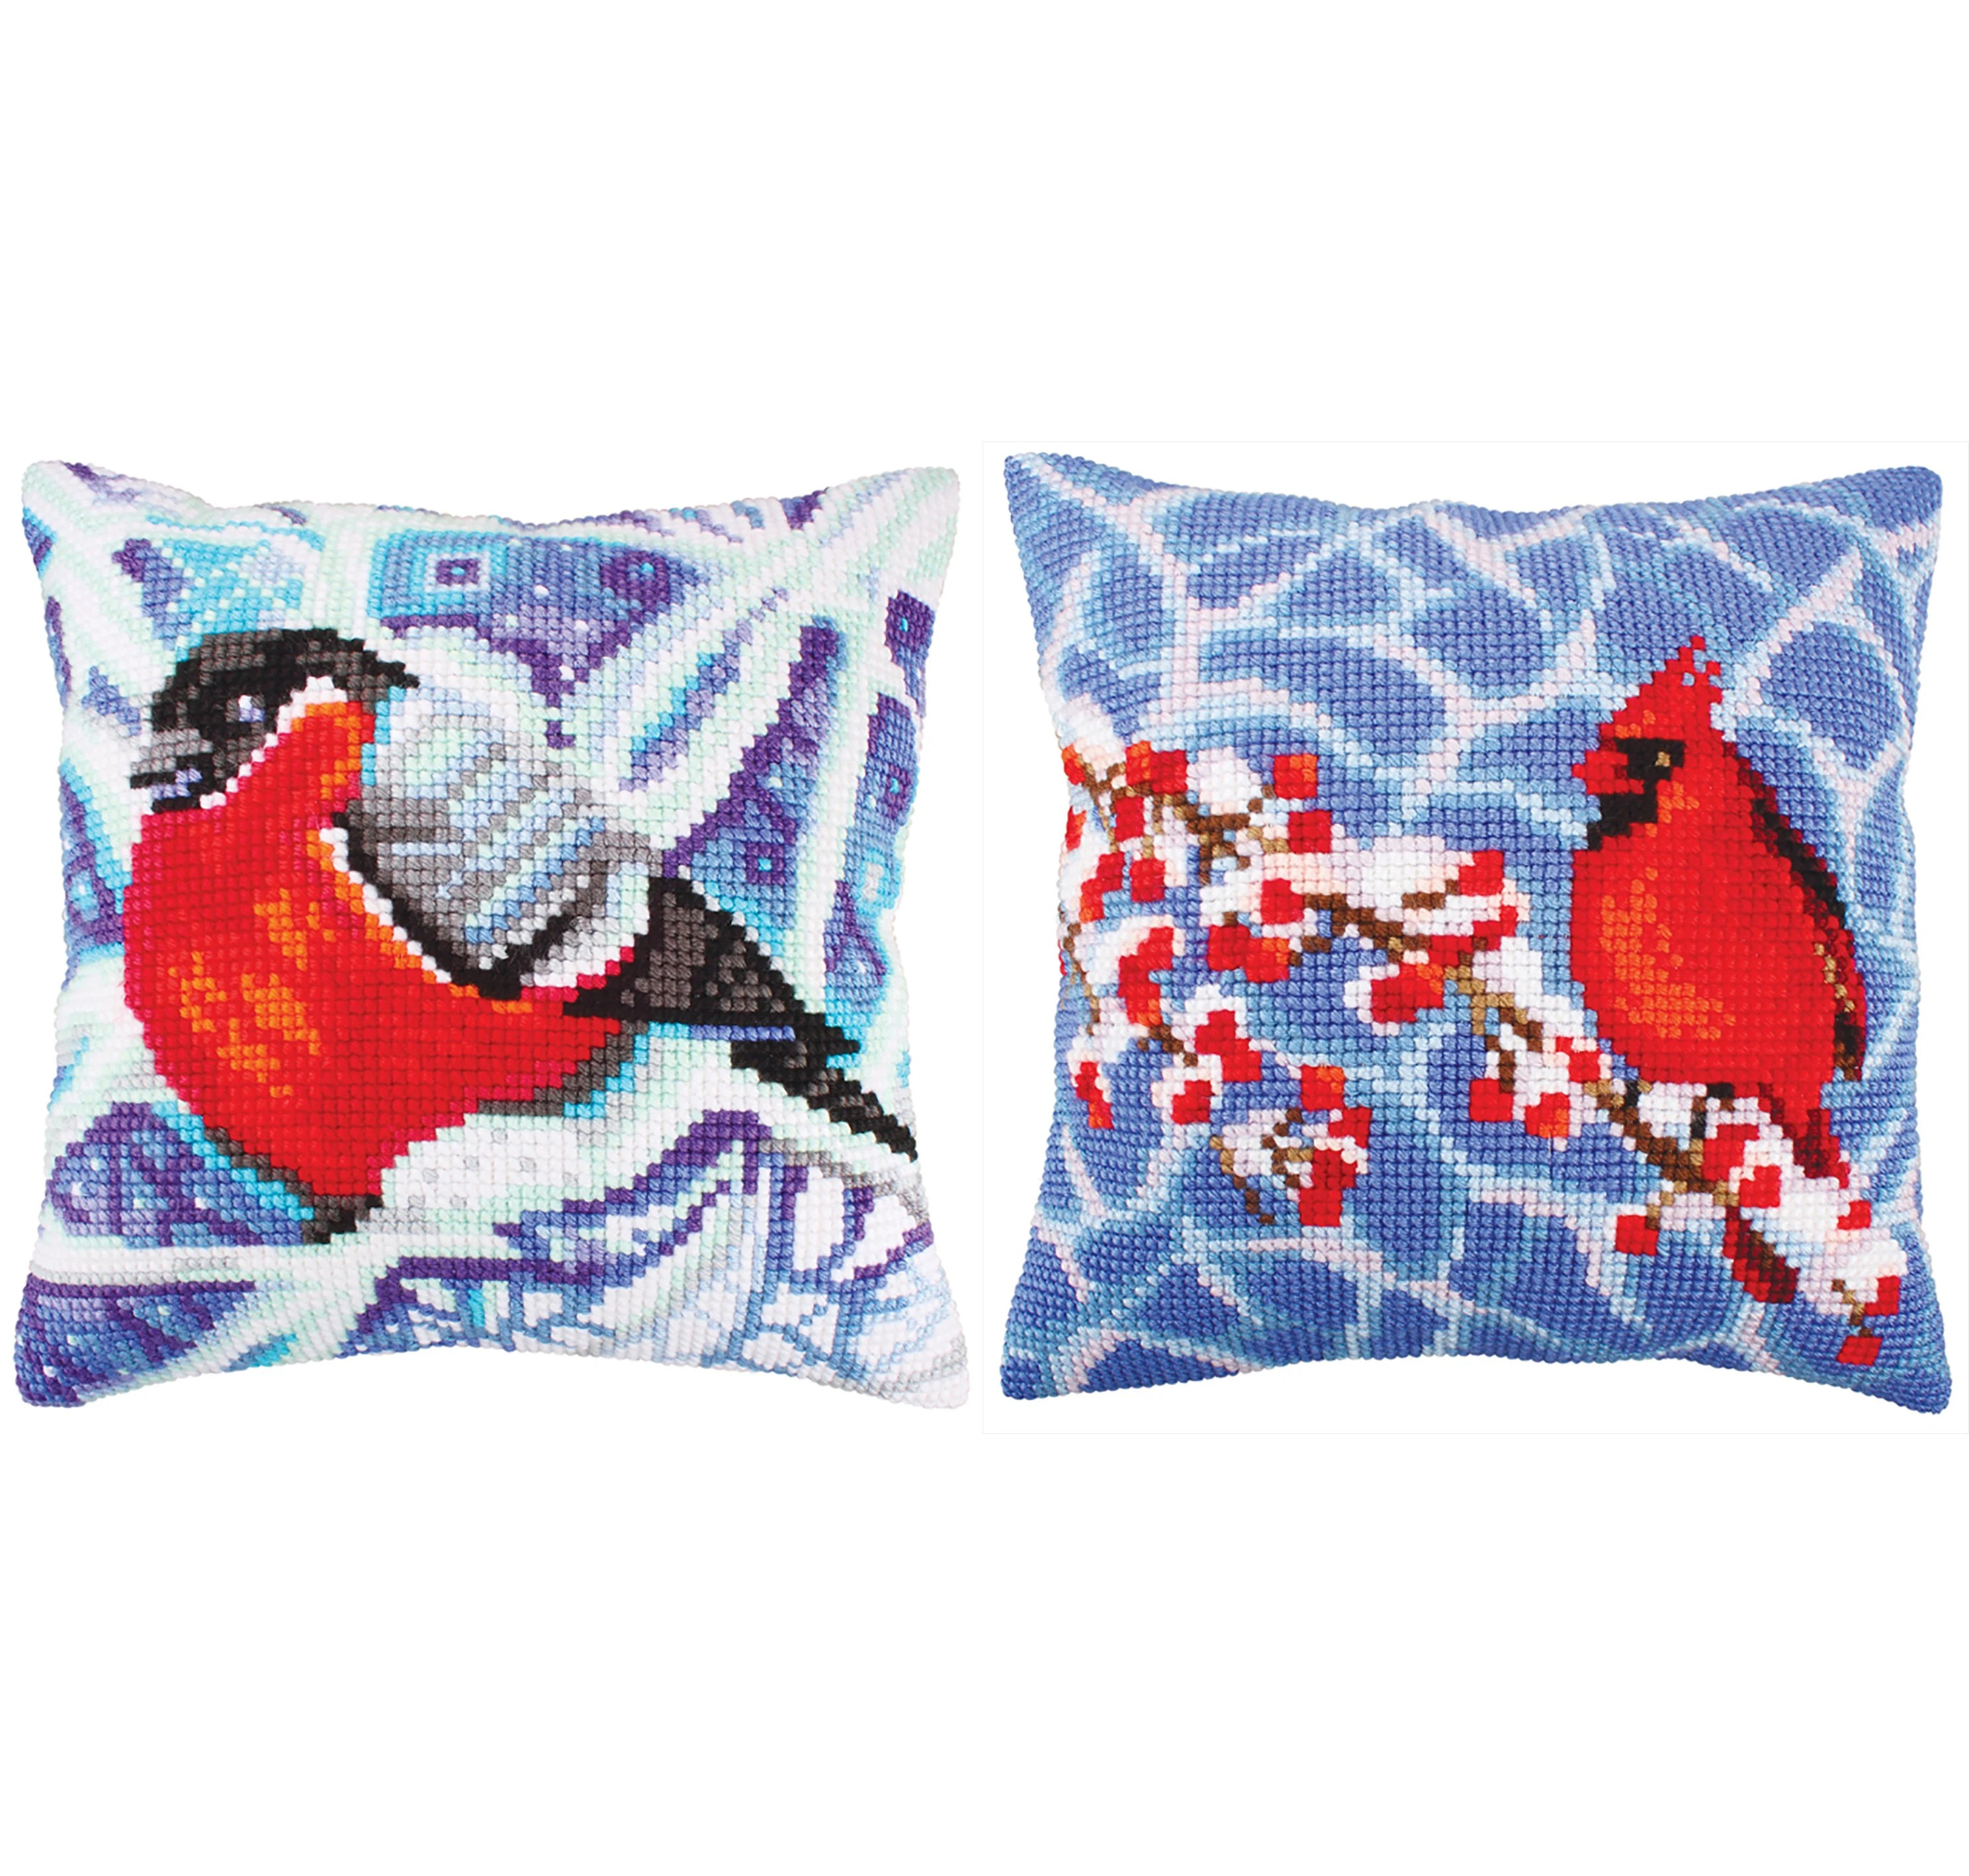 Craft Online Store Counted Cross Stitch Kits Design Craft Online Store Needlepoint Kit Winter Birds Flora Fauna Bullfinch Blue Red New Year Christmas